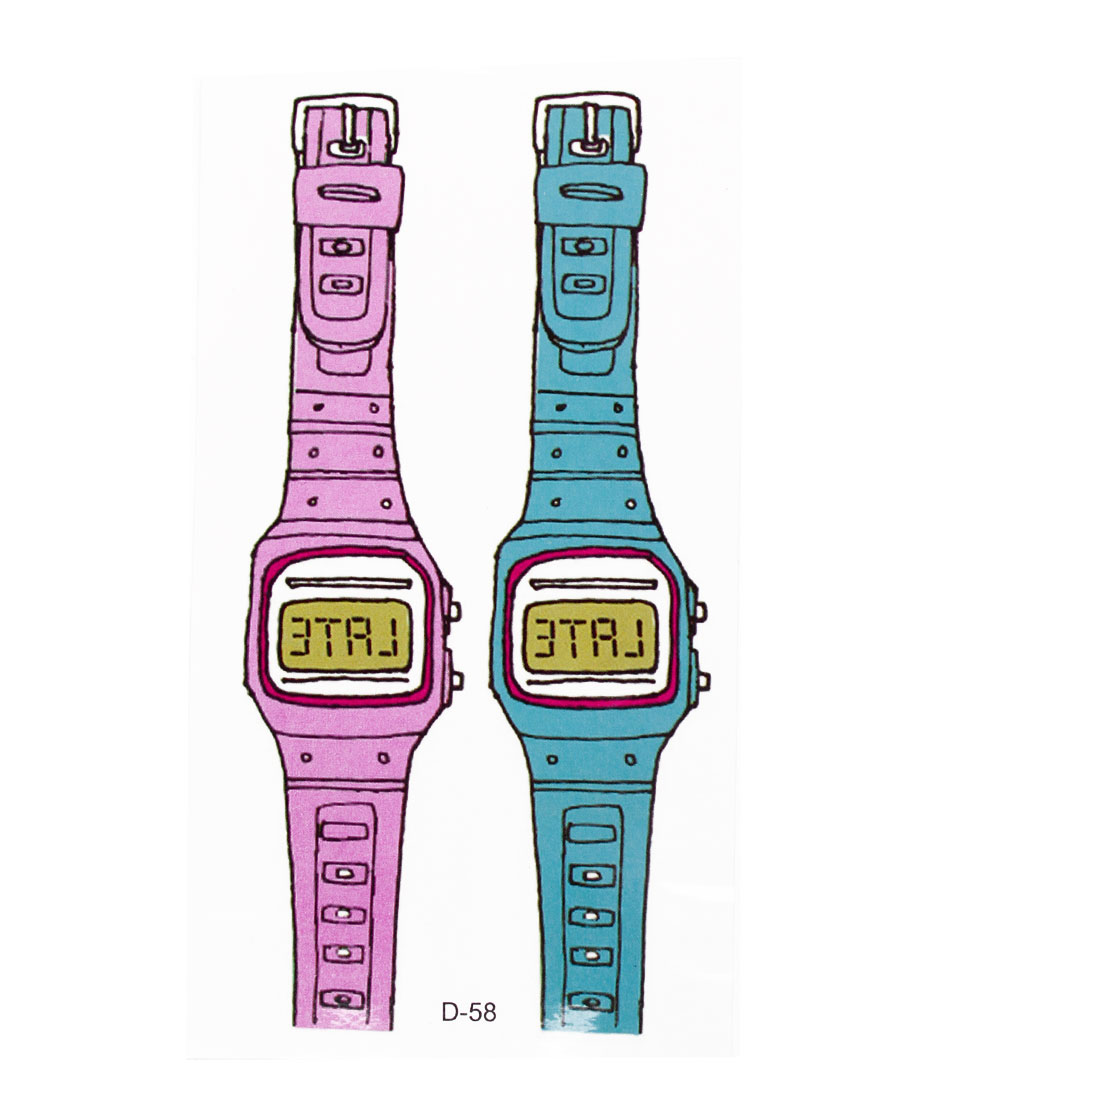 Skin Decorative Teal Blue Pink Wrist Watch Print Transfer Tattoos Stickers